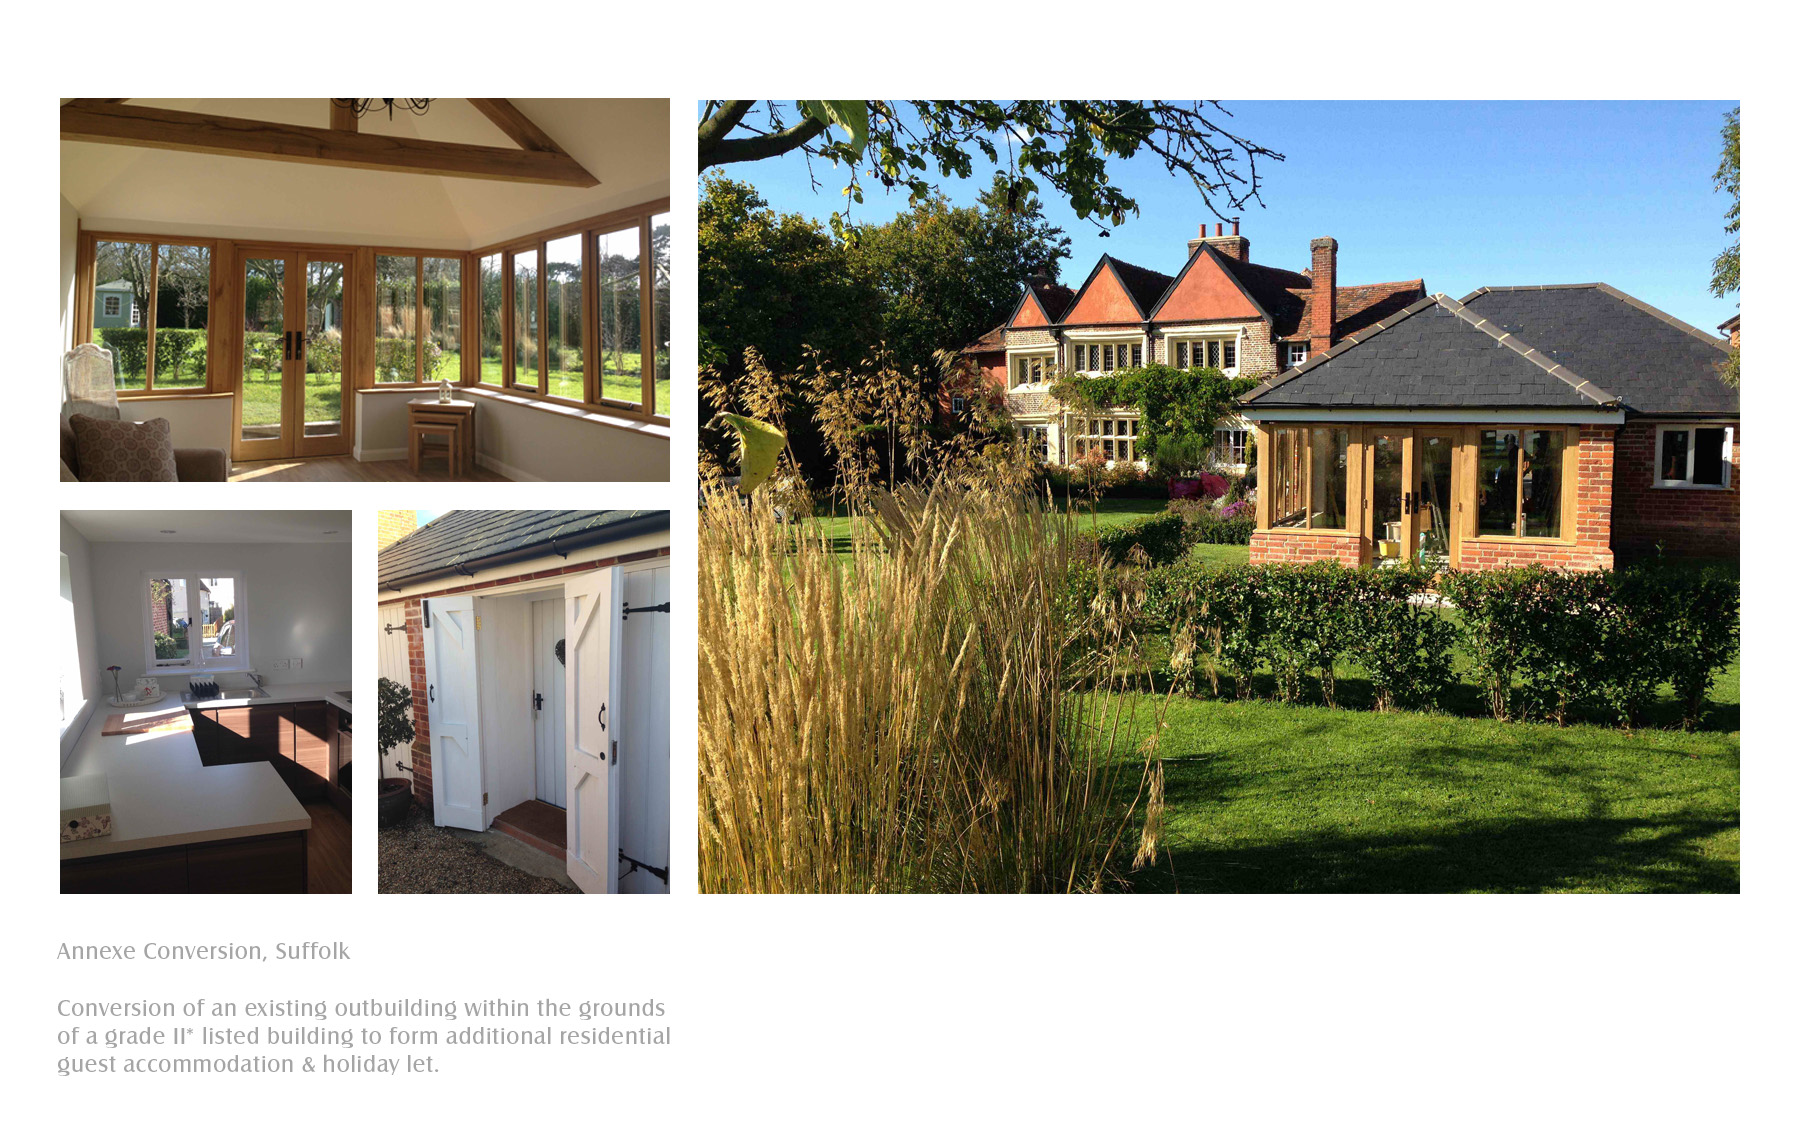 Annexe Conversion, Suffolk